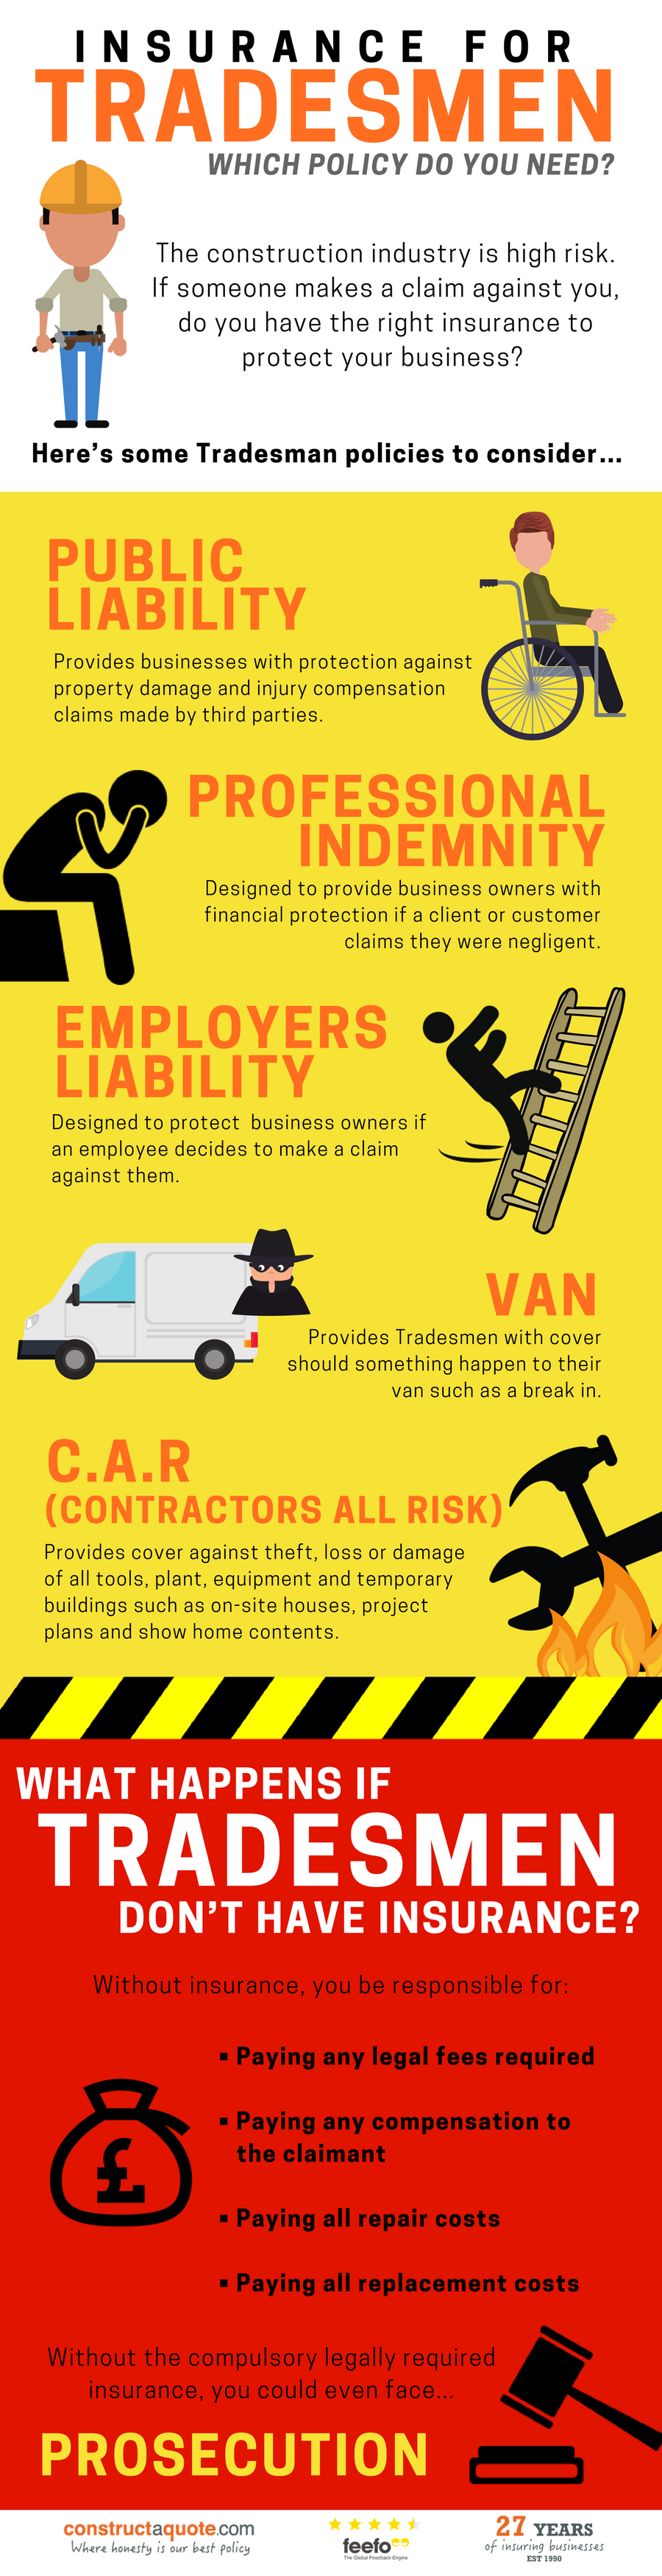 Infographic: Which Insurance Policy Do Tradesmen Need?